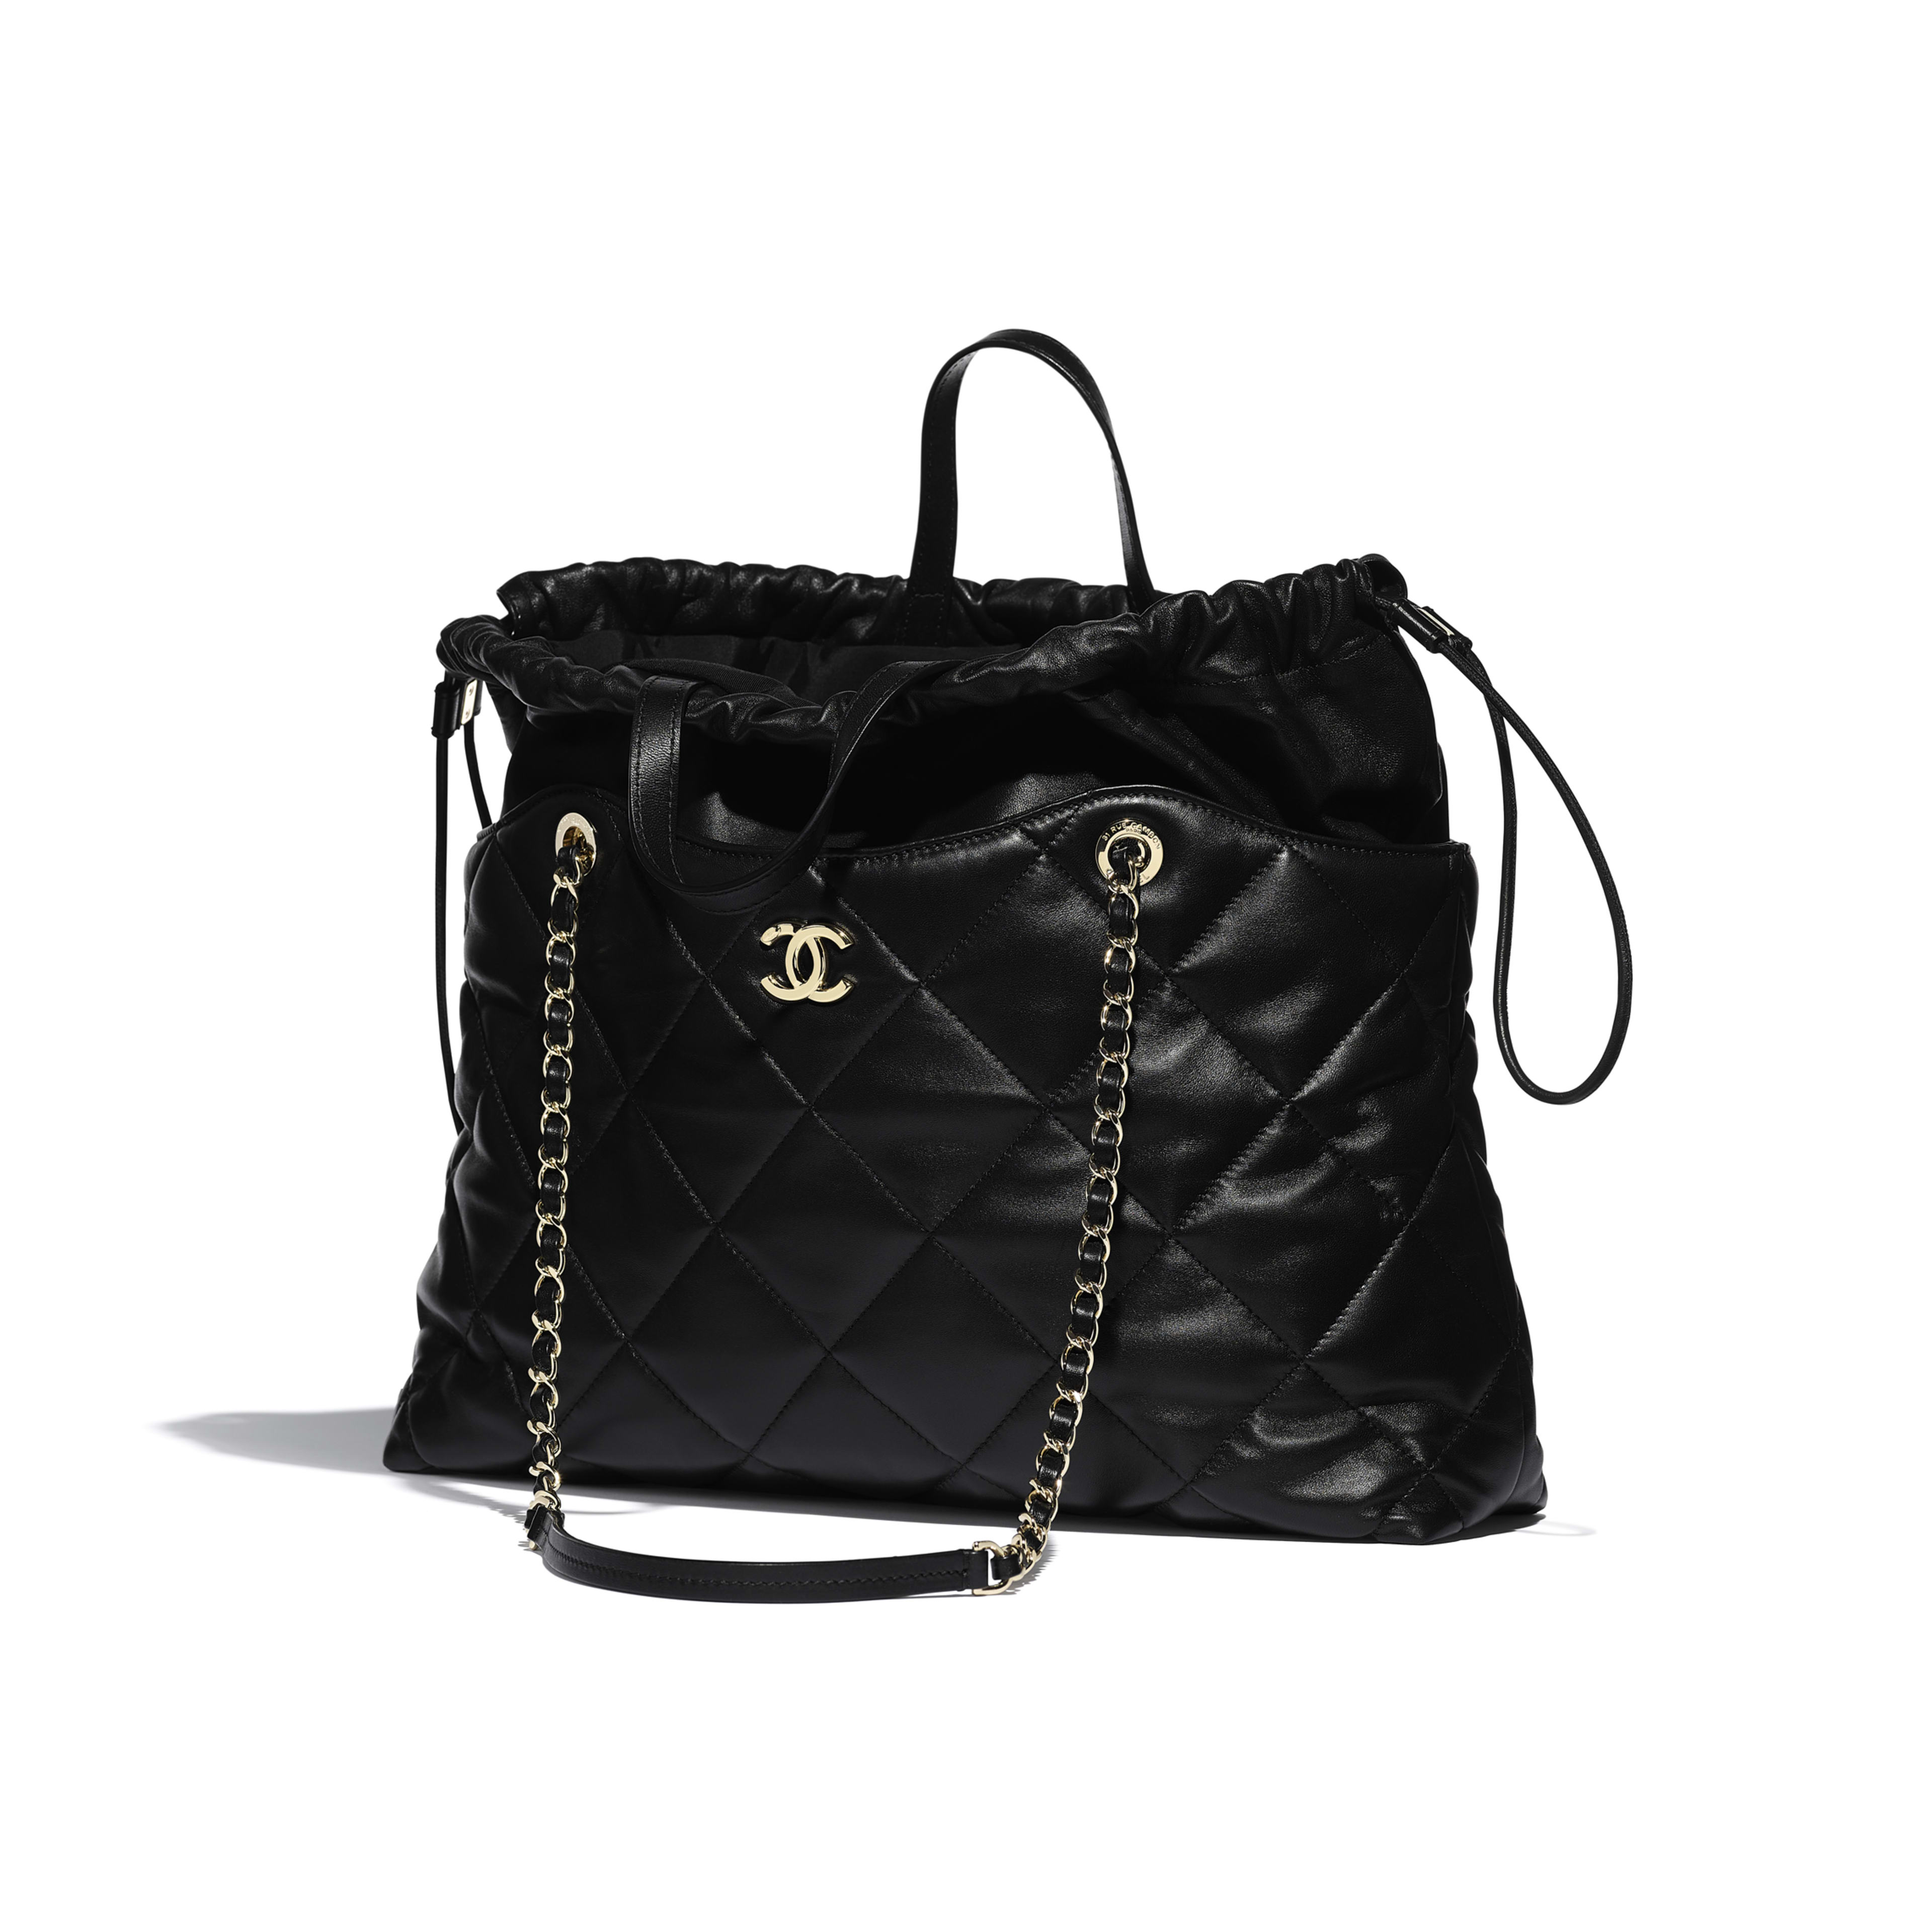 Shopping Bag - Black - Lambskin - Other view - see full sized version